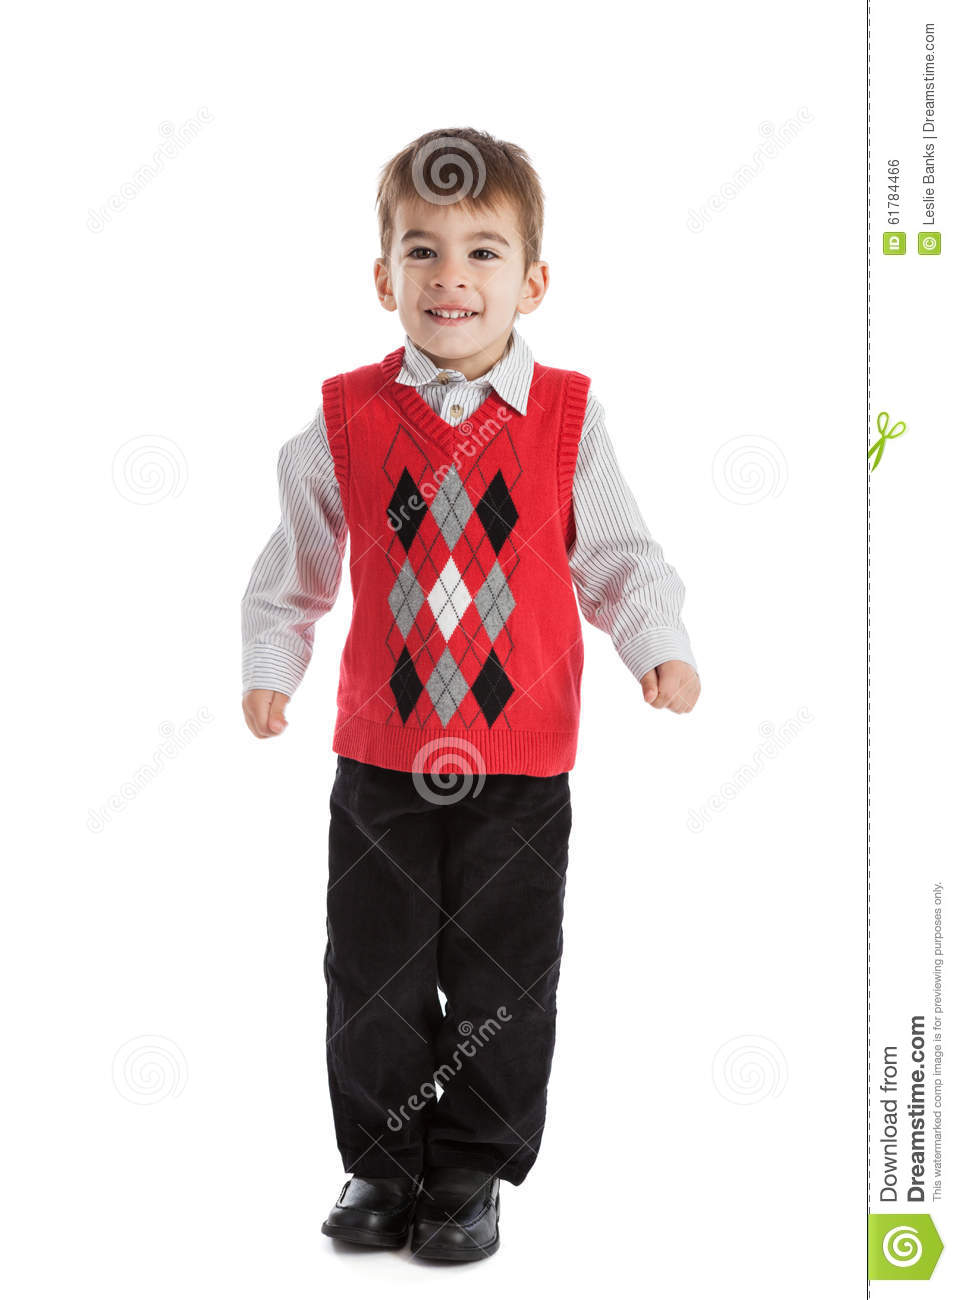 c78f1ca57 Portrait Of A 3 Year Old Boy Stock Photo - Image of little